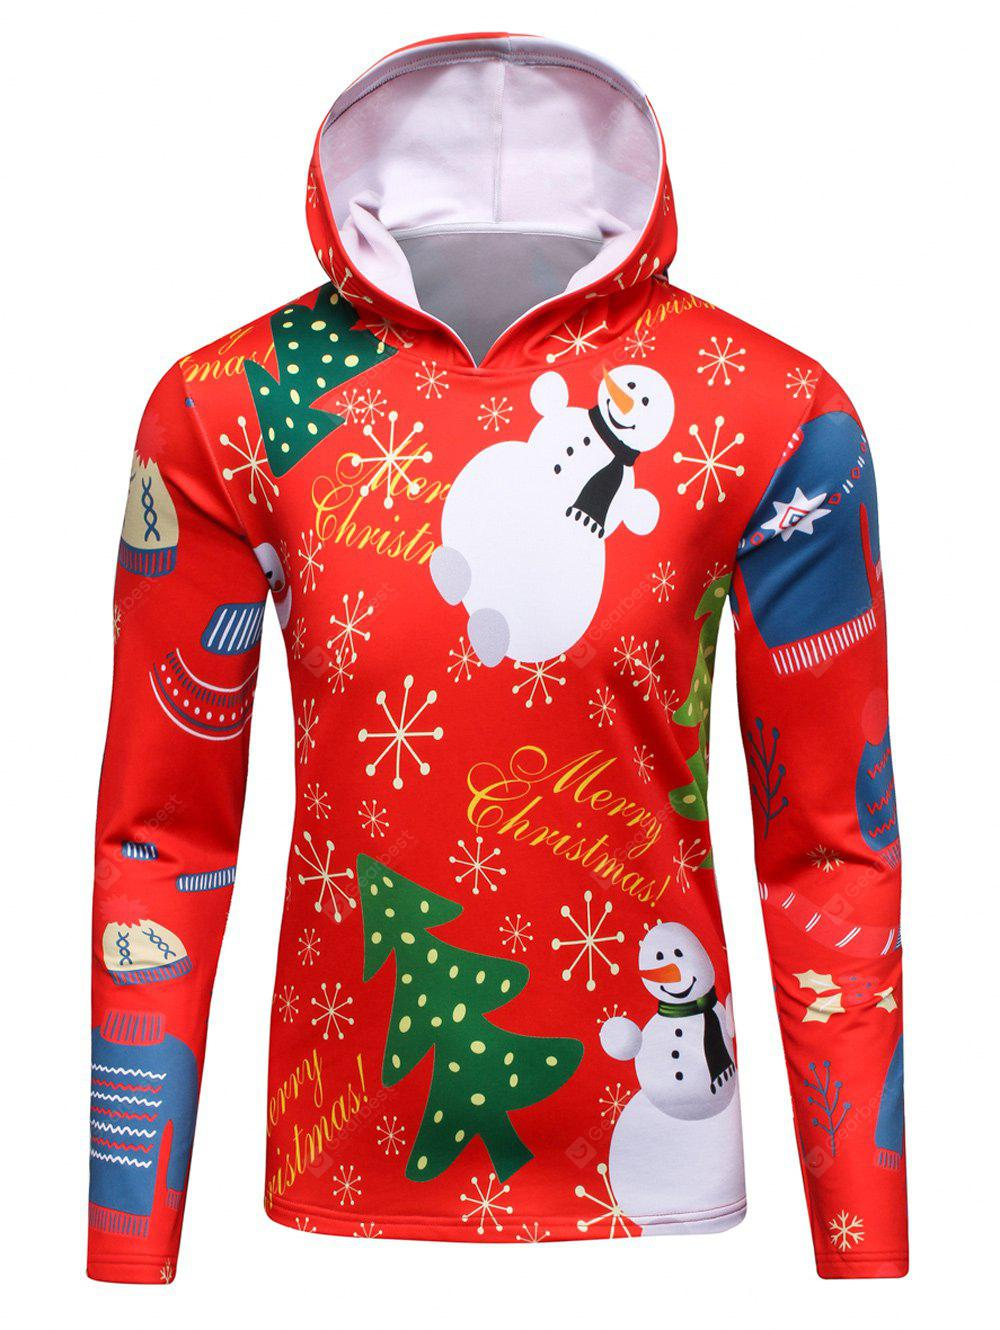 3D Christmas Tree and Snowman Print Flocking Hoodie